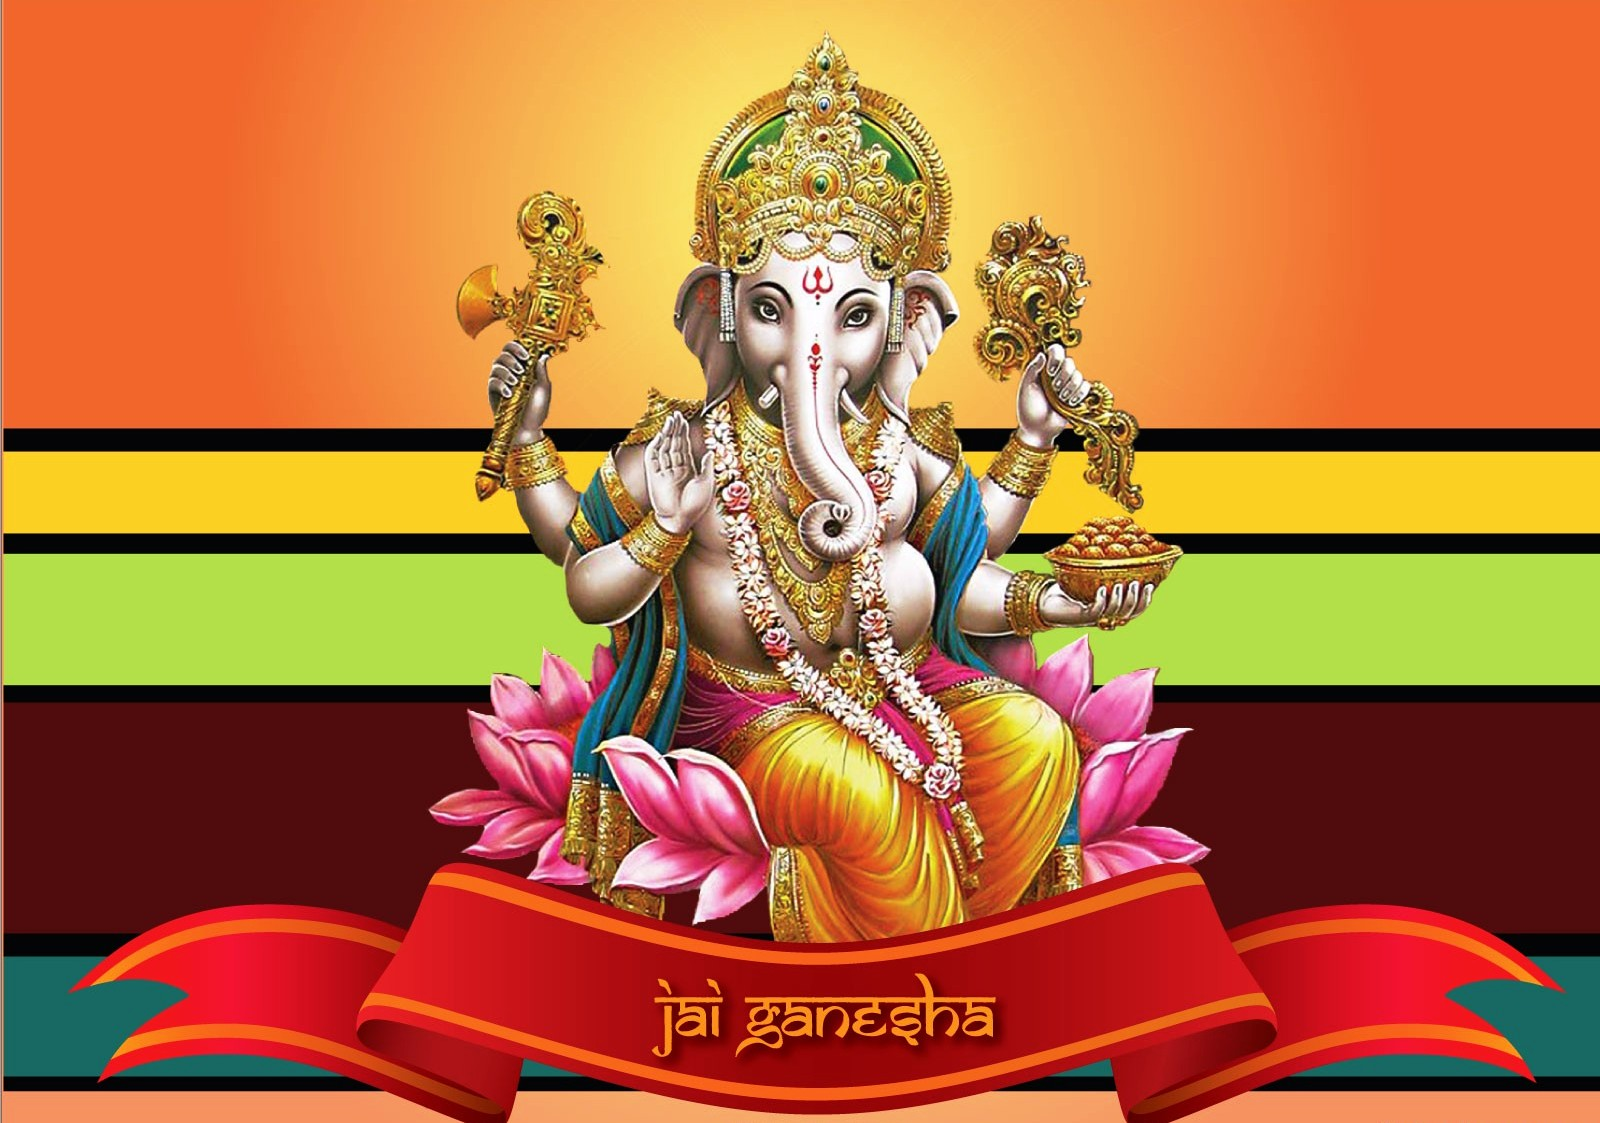 Jai Shri Ganesha Hd Wallpapers Fun At Infosyte